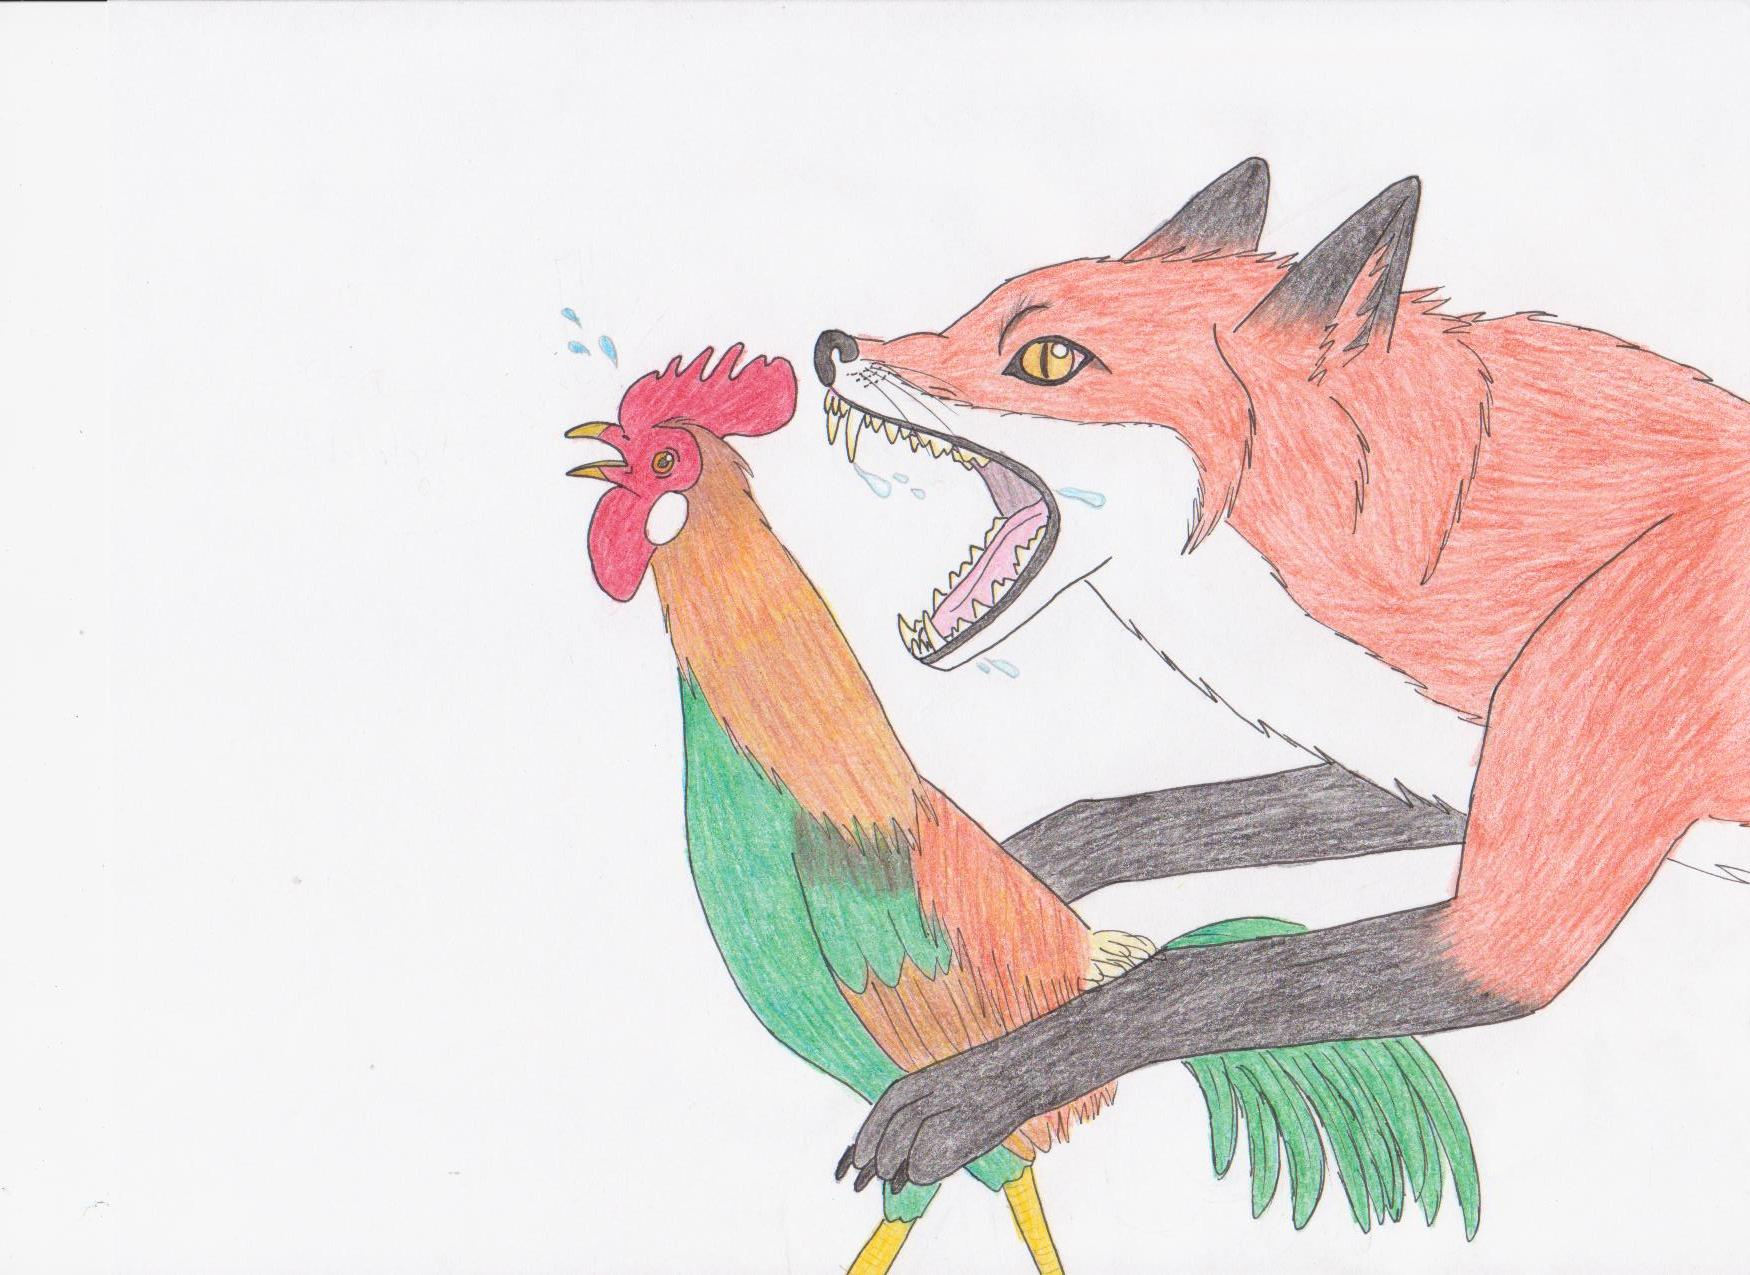 Fox and rooster by bleu mademoiselle on deviantart for The chanticleer